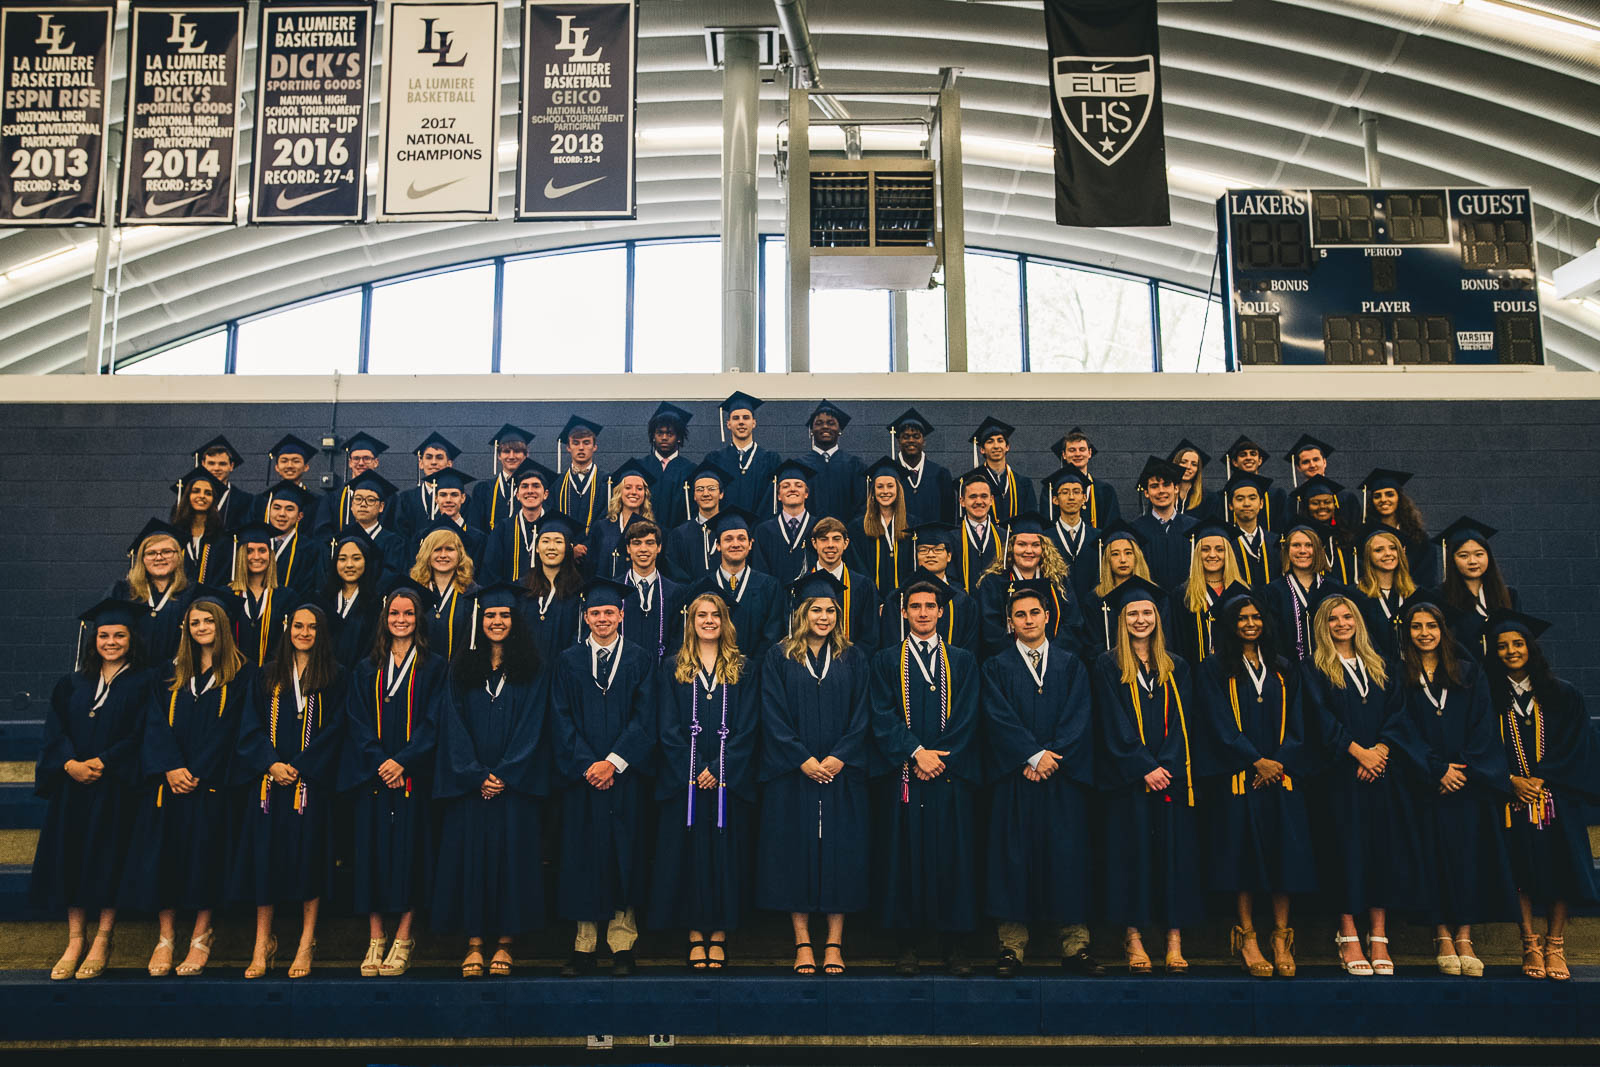 La Lumiere School's Class of 2019 is comprised of 62 students who will be attending colleges in over 20 states and at least two countries outside the U.S. this fall.